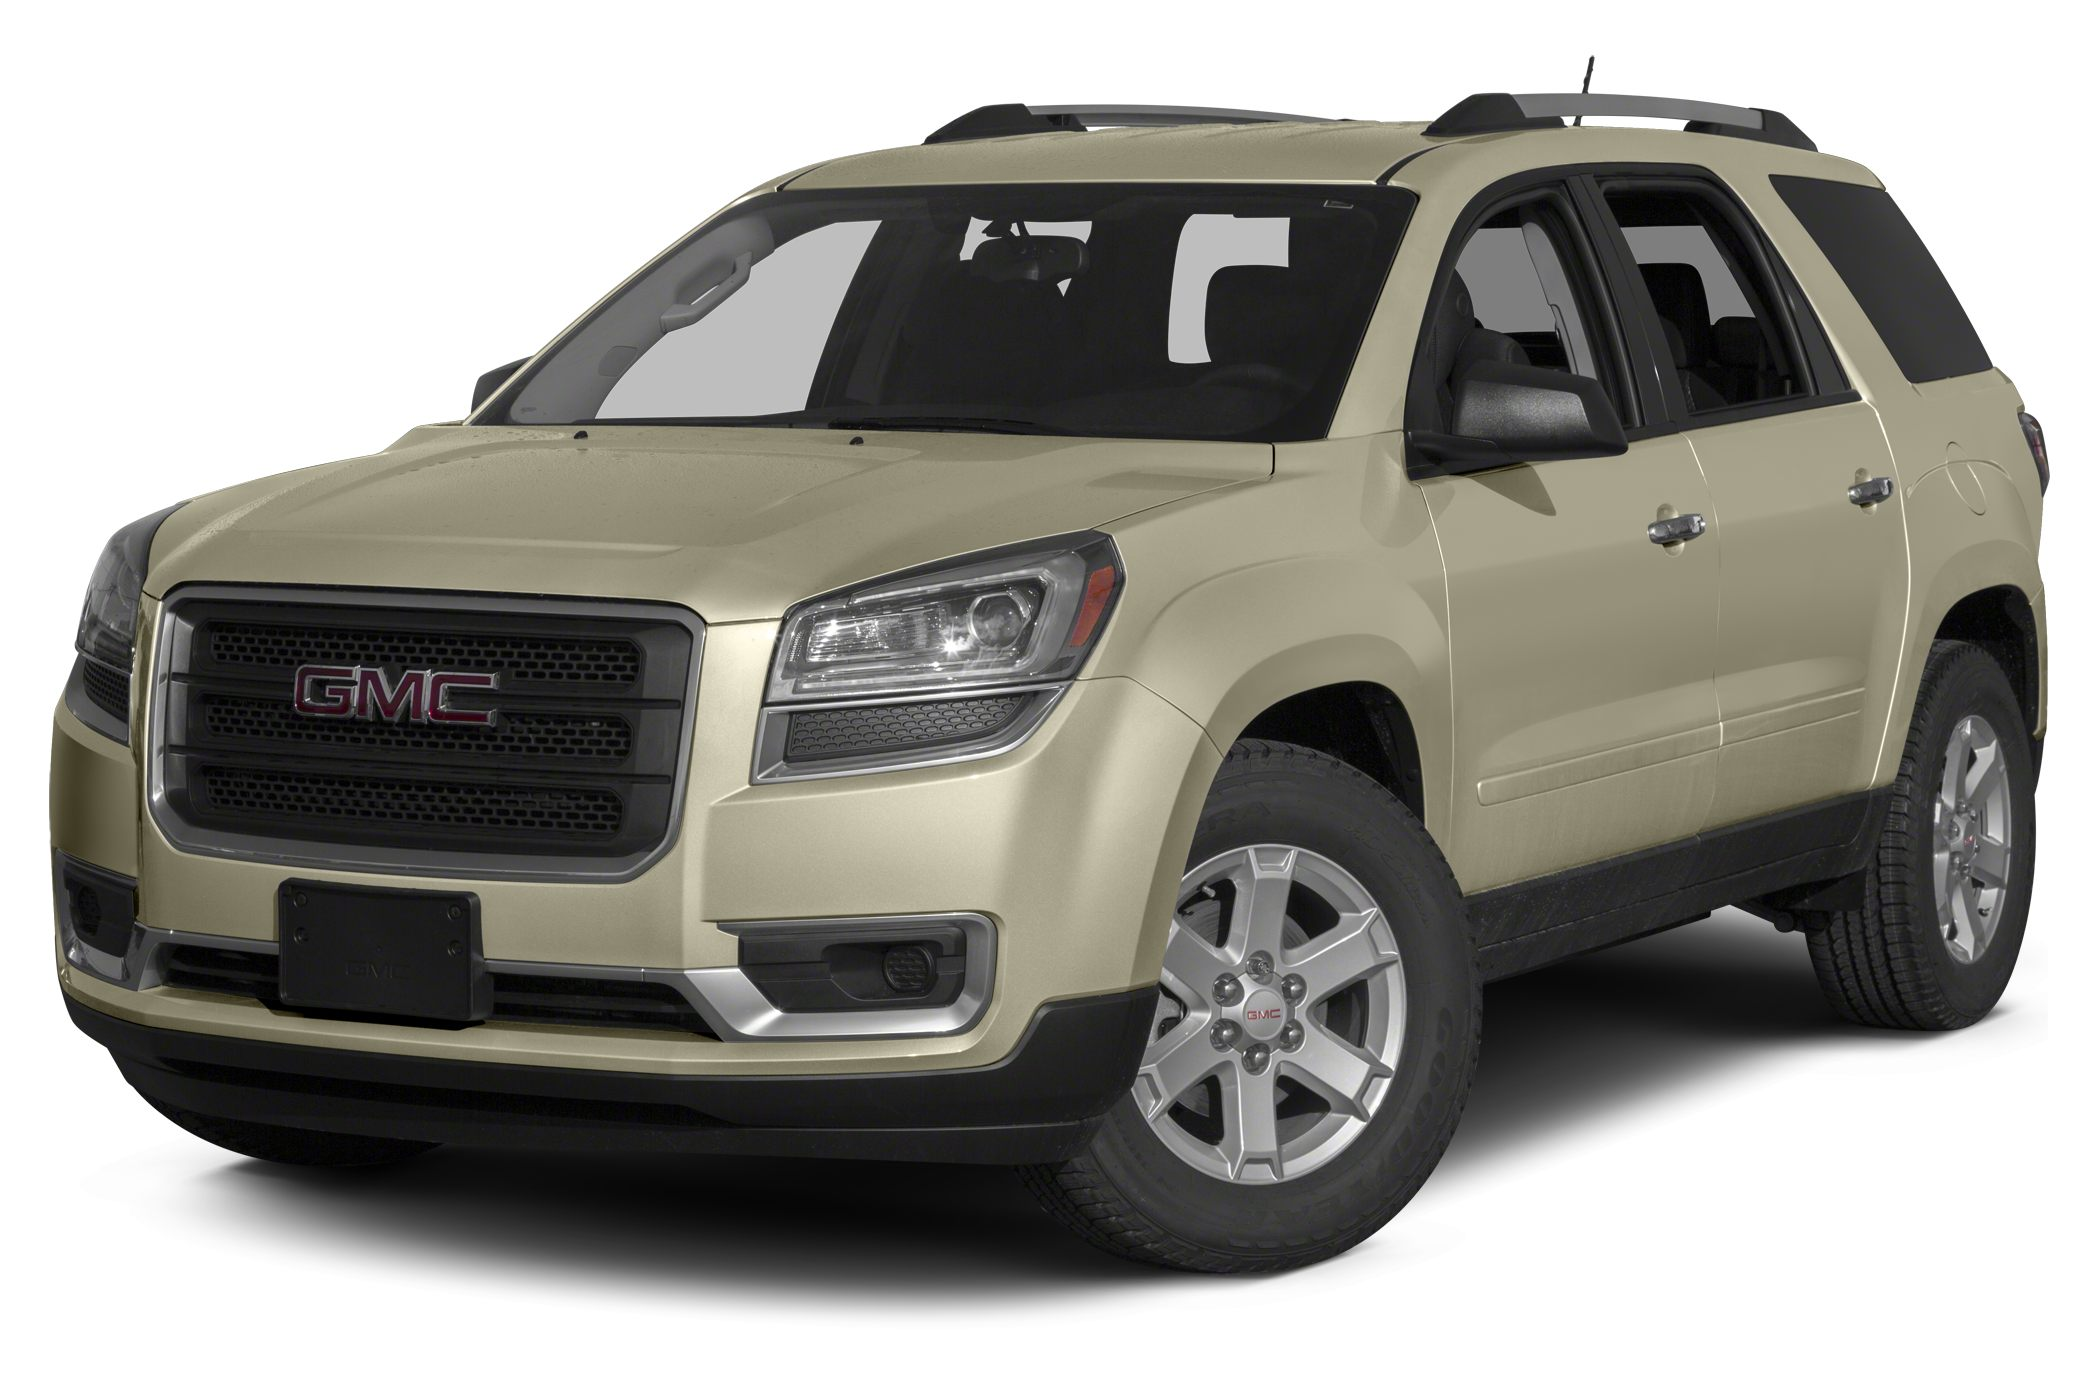 2014 GMC Acadia SLT-1 SUV for sale in Acworth for $32,997 with 26,256 miles